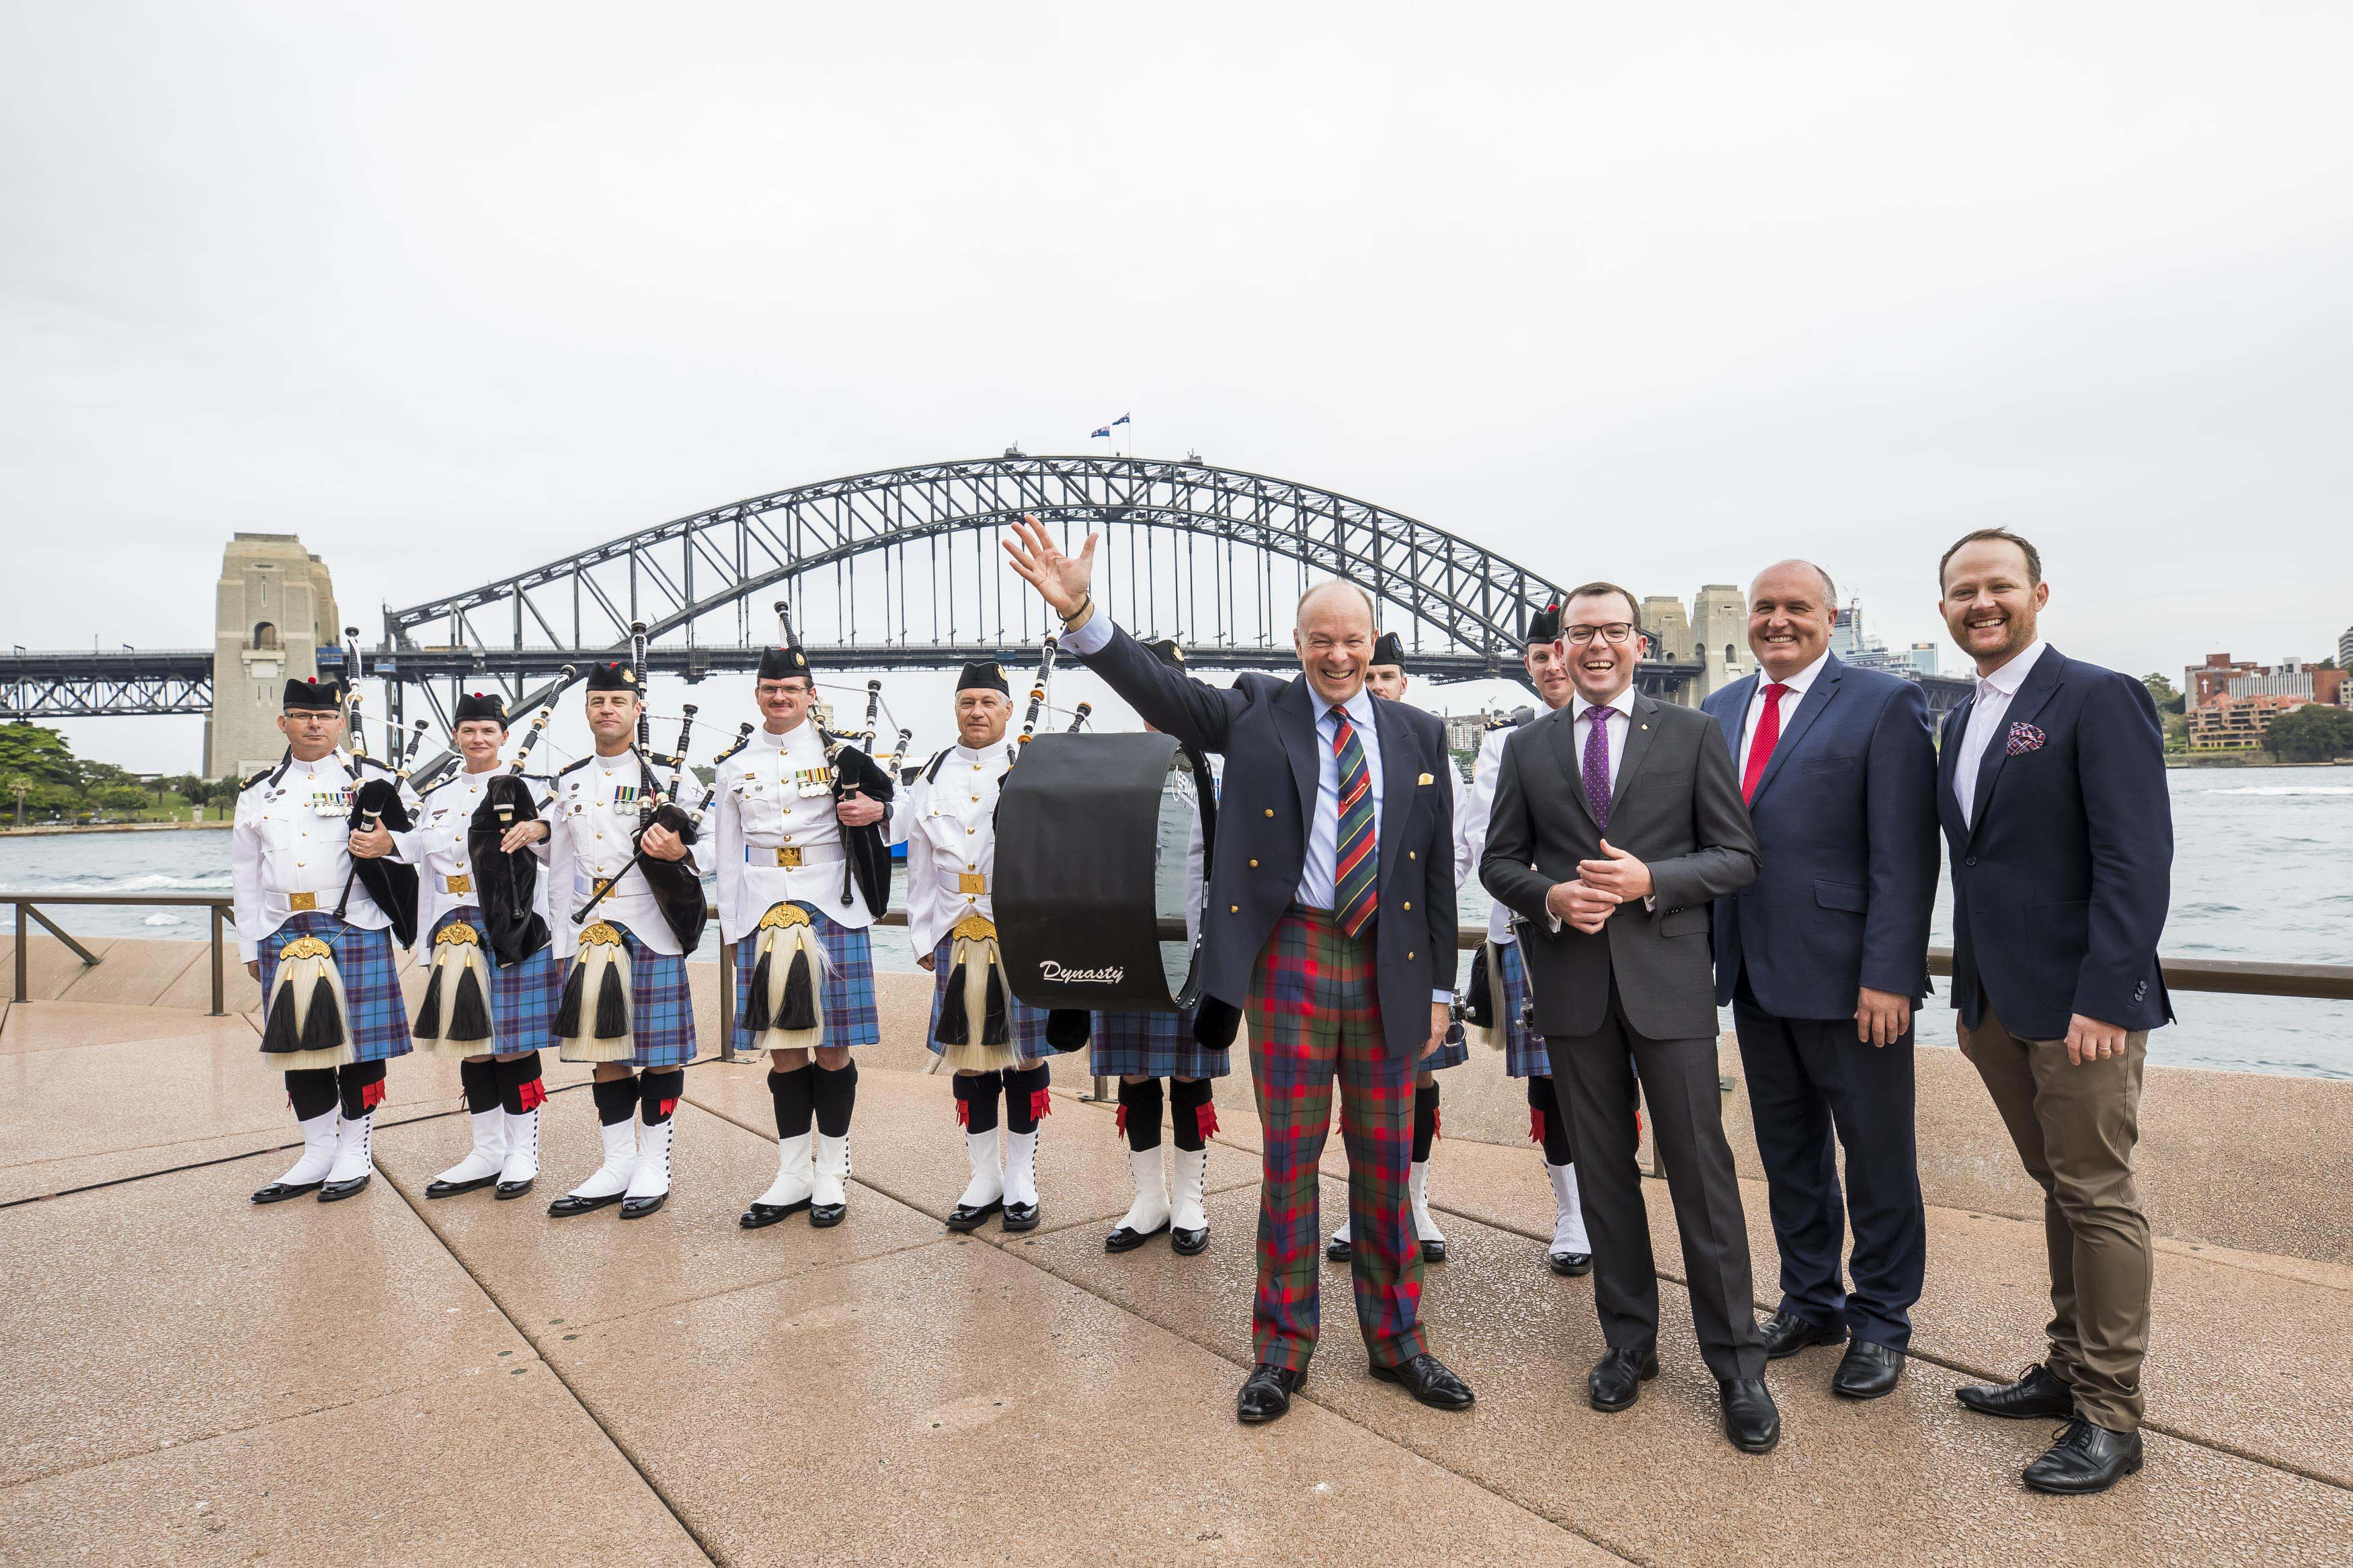 The Royal Edinburgh Military Tattoo has announced that it will stage a four-night showcase in Sydney next year (Anna Kucera)